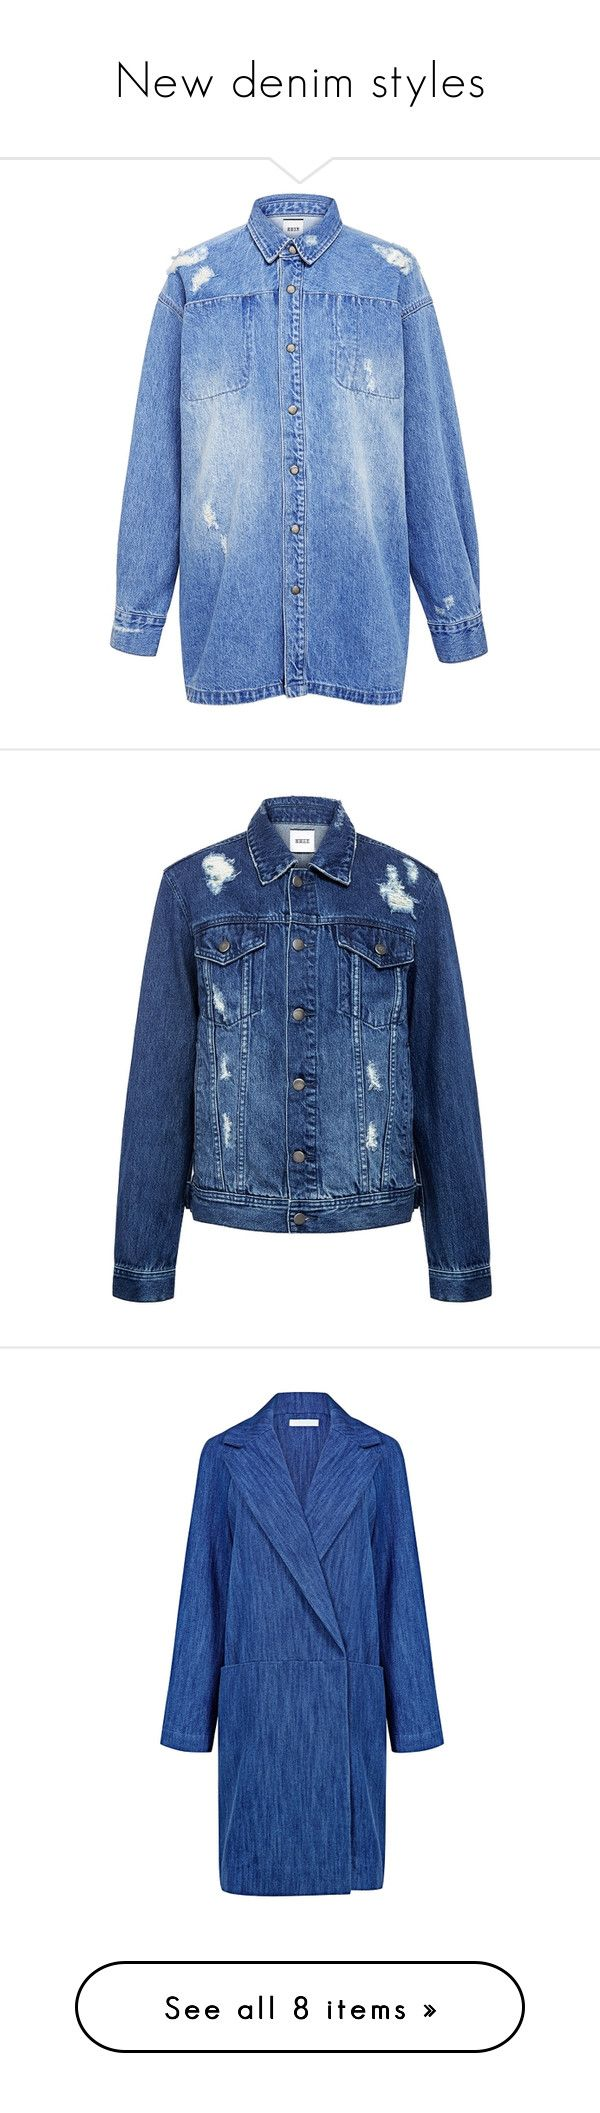 """""""New denim styles"""" by ifchic ❤ liked on Polyvore featuring ifchic, outerwear, jackets, blue denim jacket, workwear jacket, blue jackets, denim jacket, oversized jacket, boyfriend jean jacket and distressed jacket"""